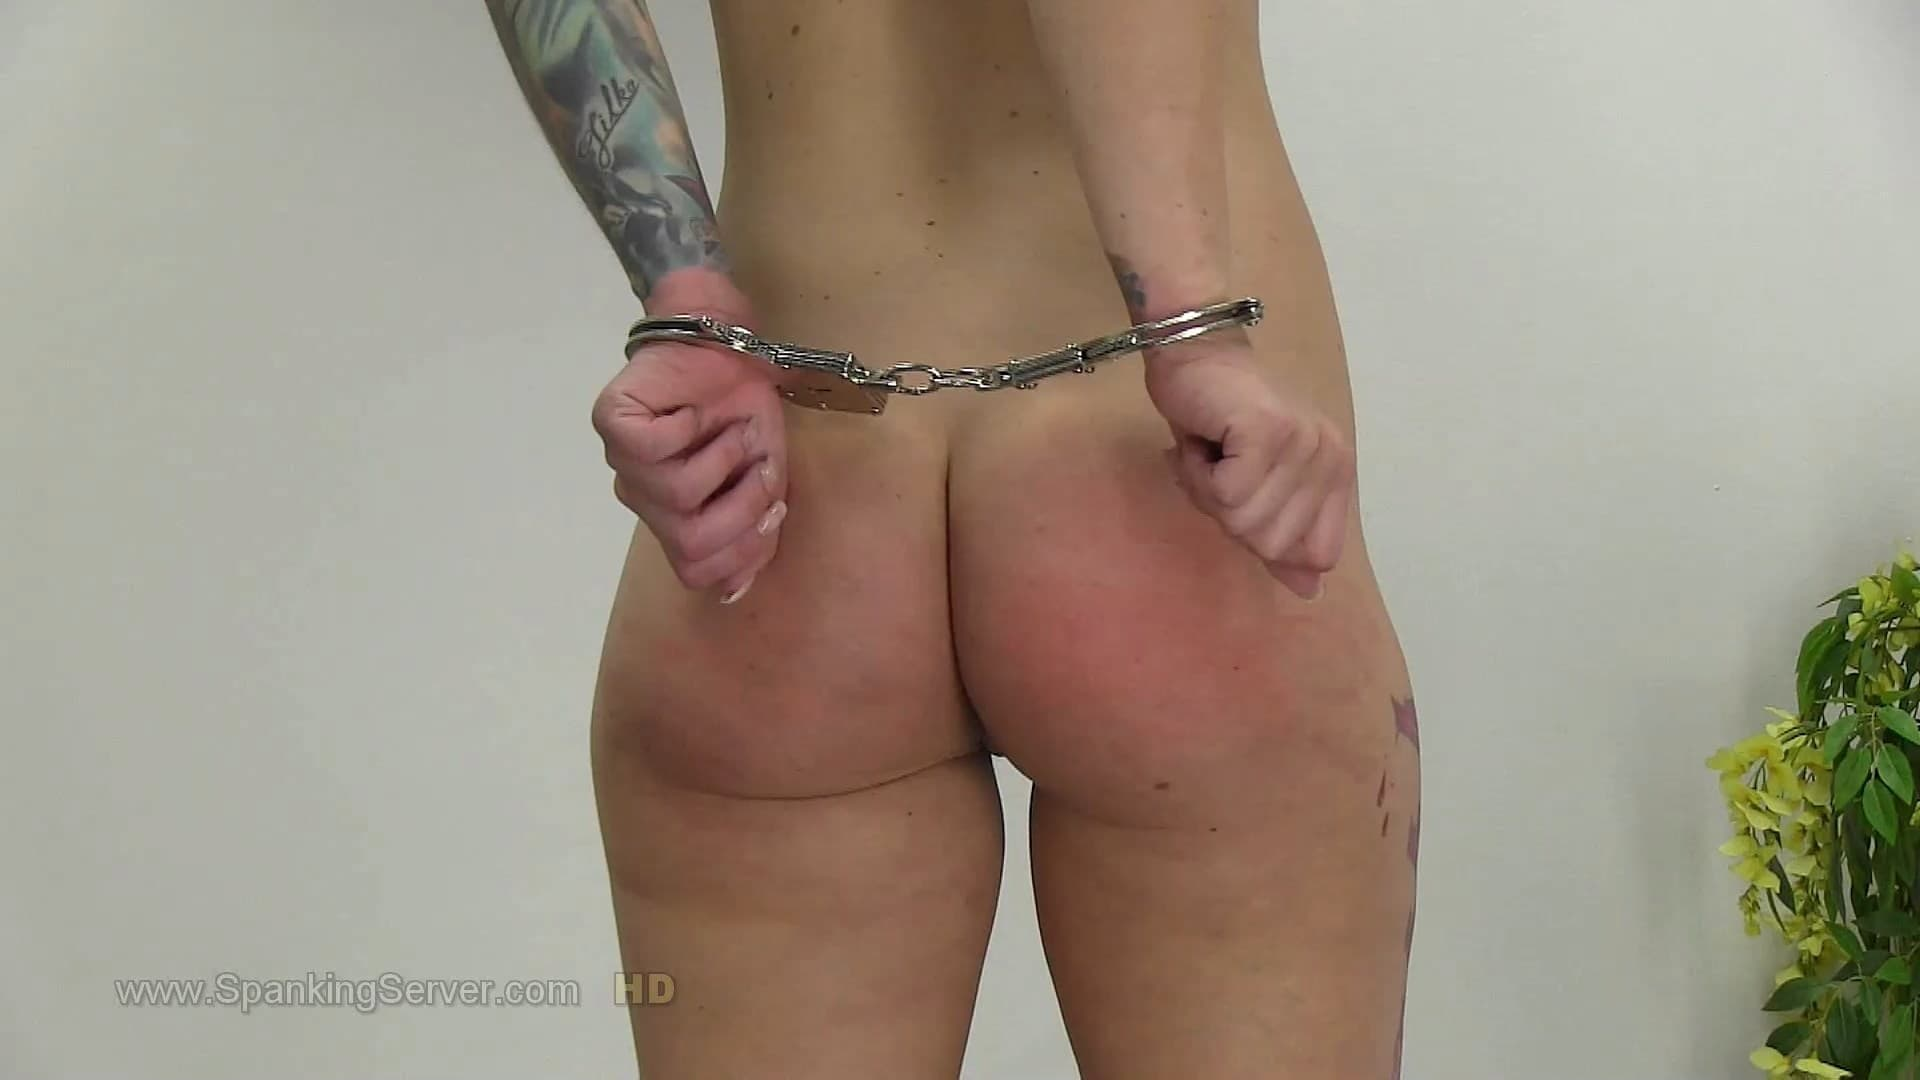 Spanking Server – MP4/Full HD – Foxy – 2021 – 04 Week